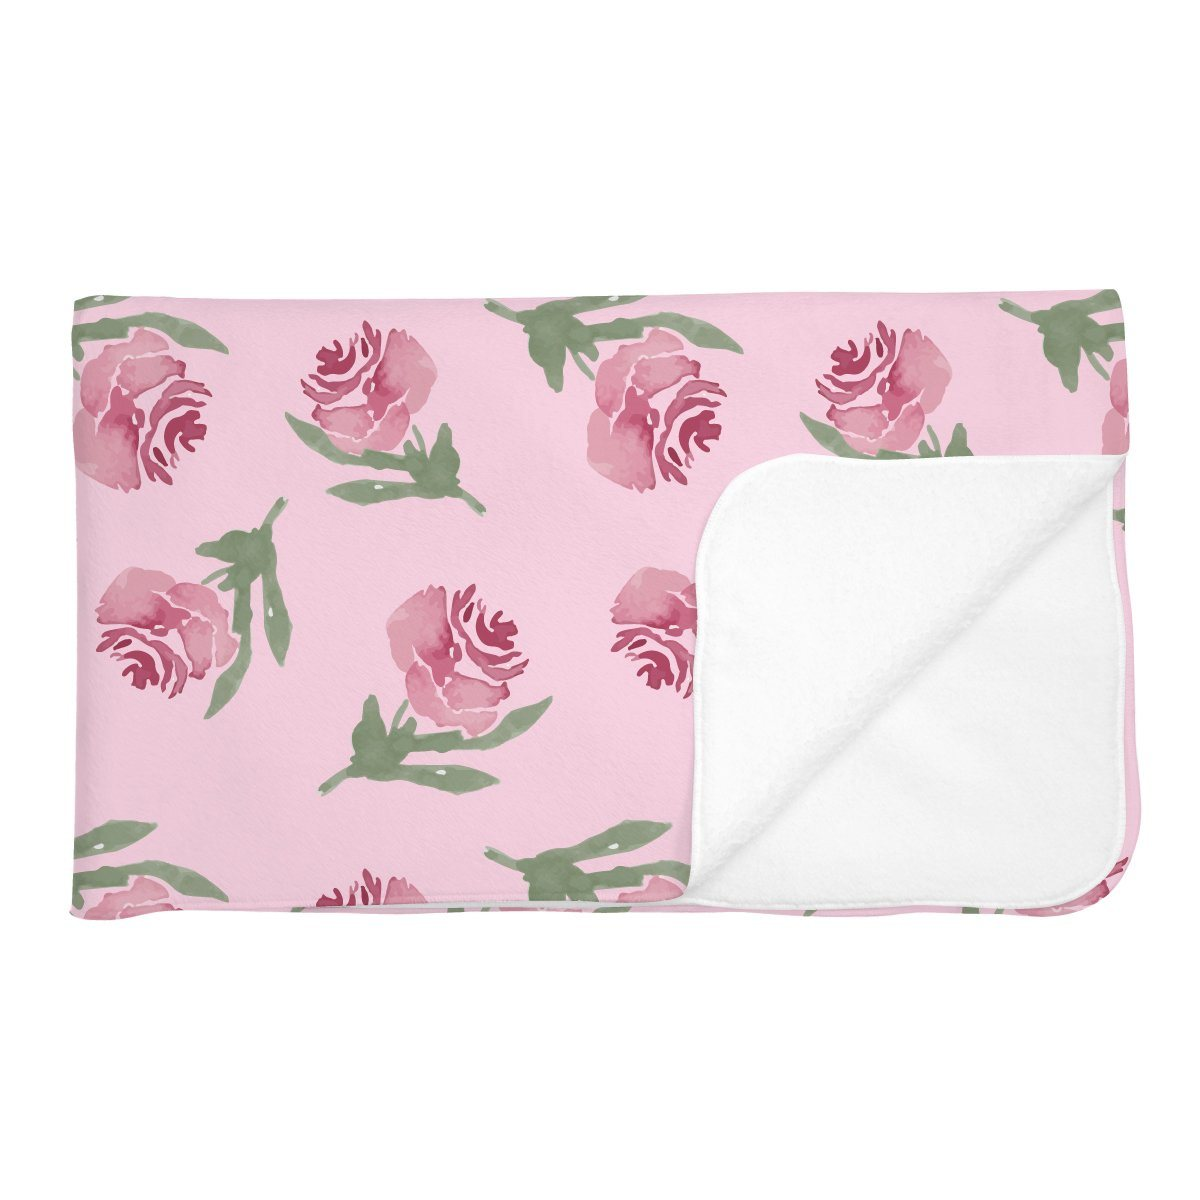 Amelia's Antique Floral | Adult Size Blanket